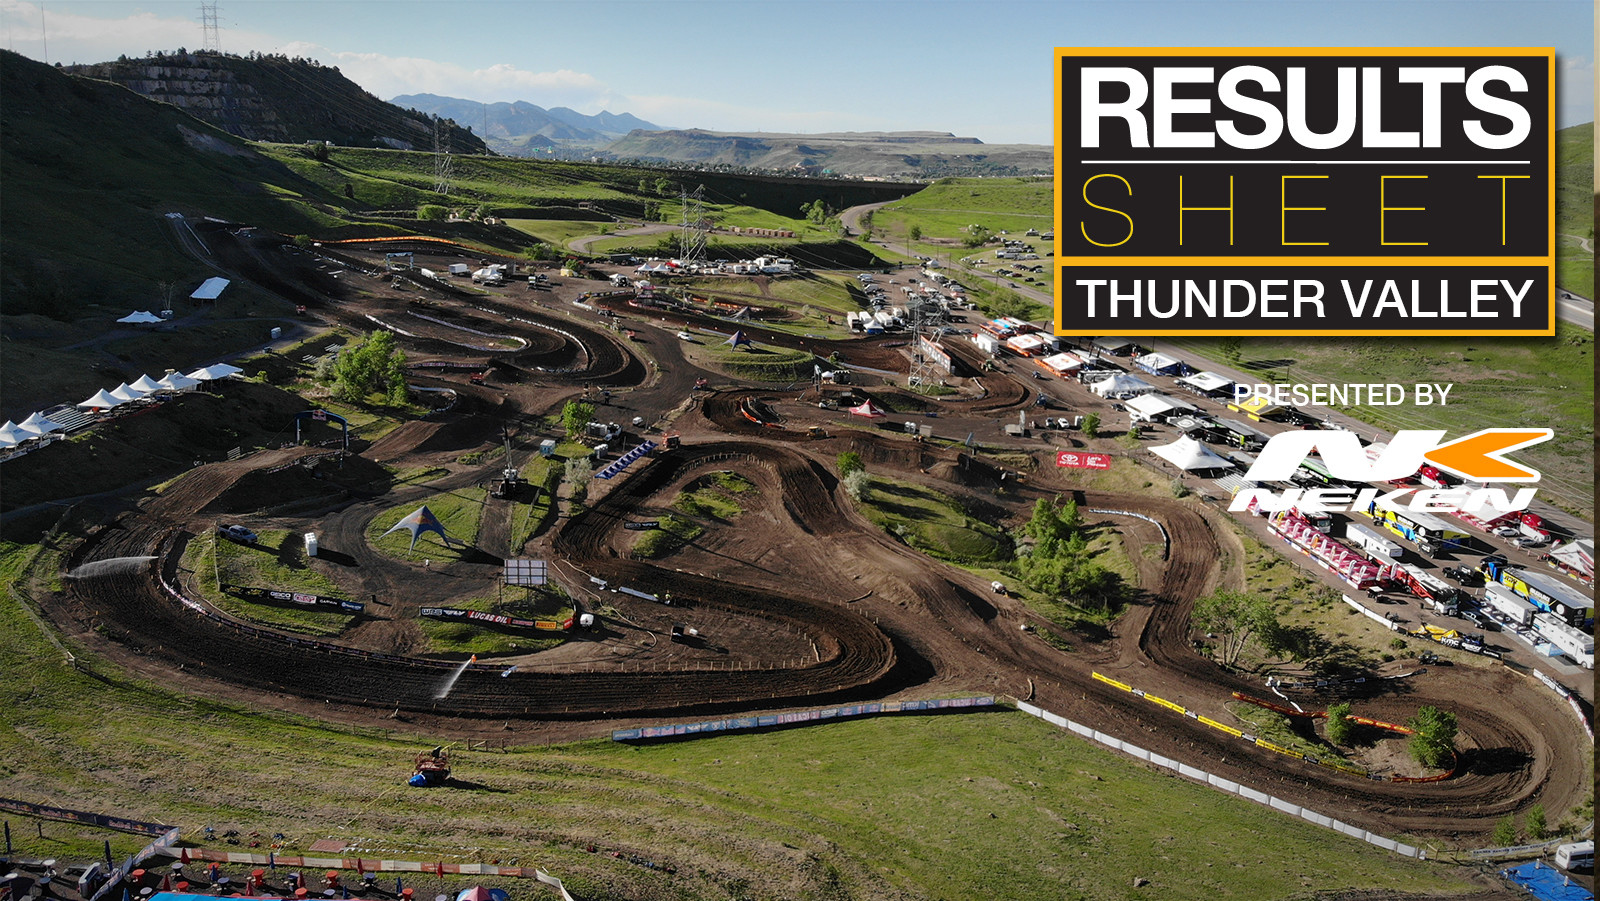 Results Sheet: 2018 Thunder Valley Motocross National